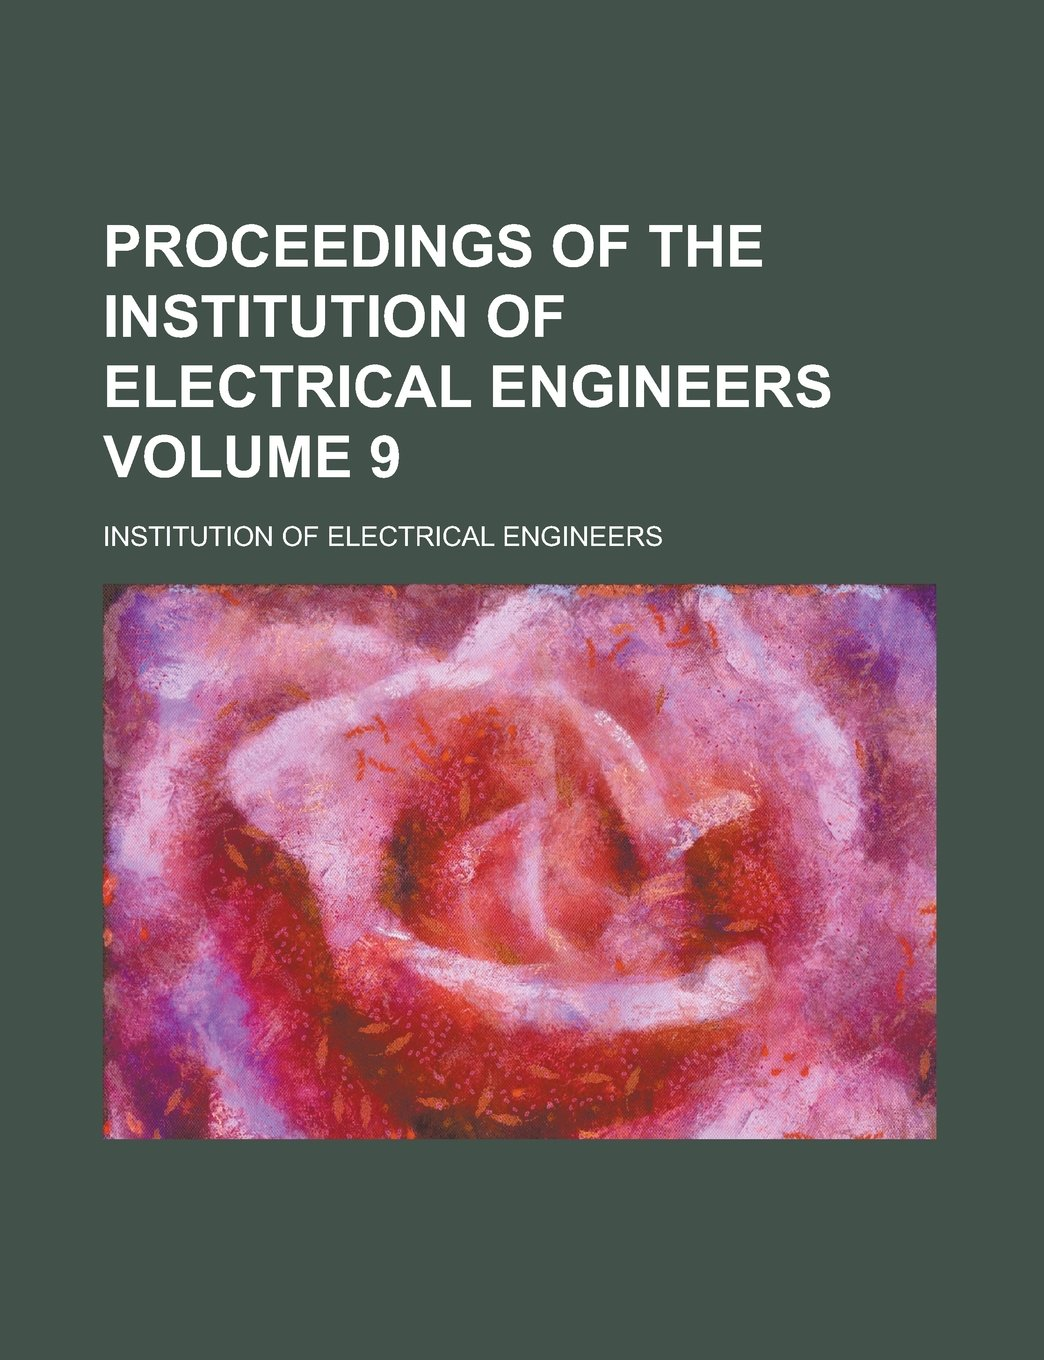 Read Online Proceedings of the Institution of Electrical Engineers Volume 9 PDF